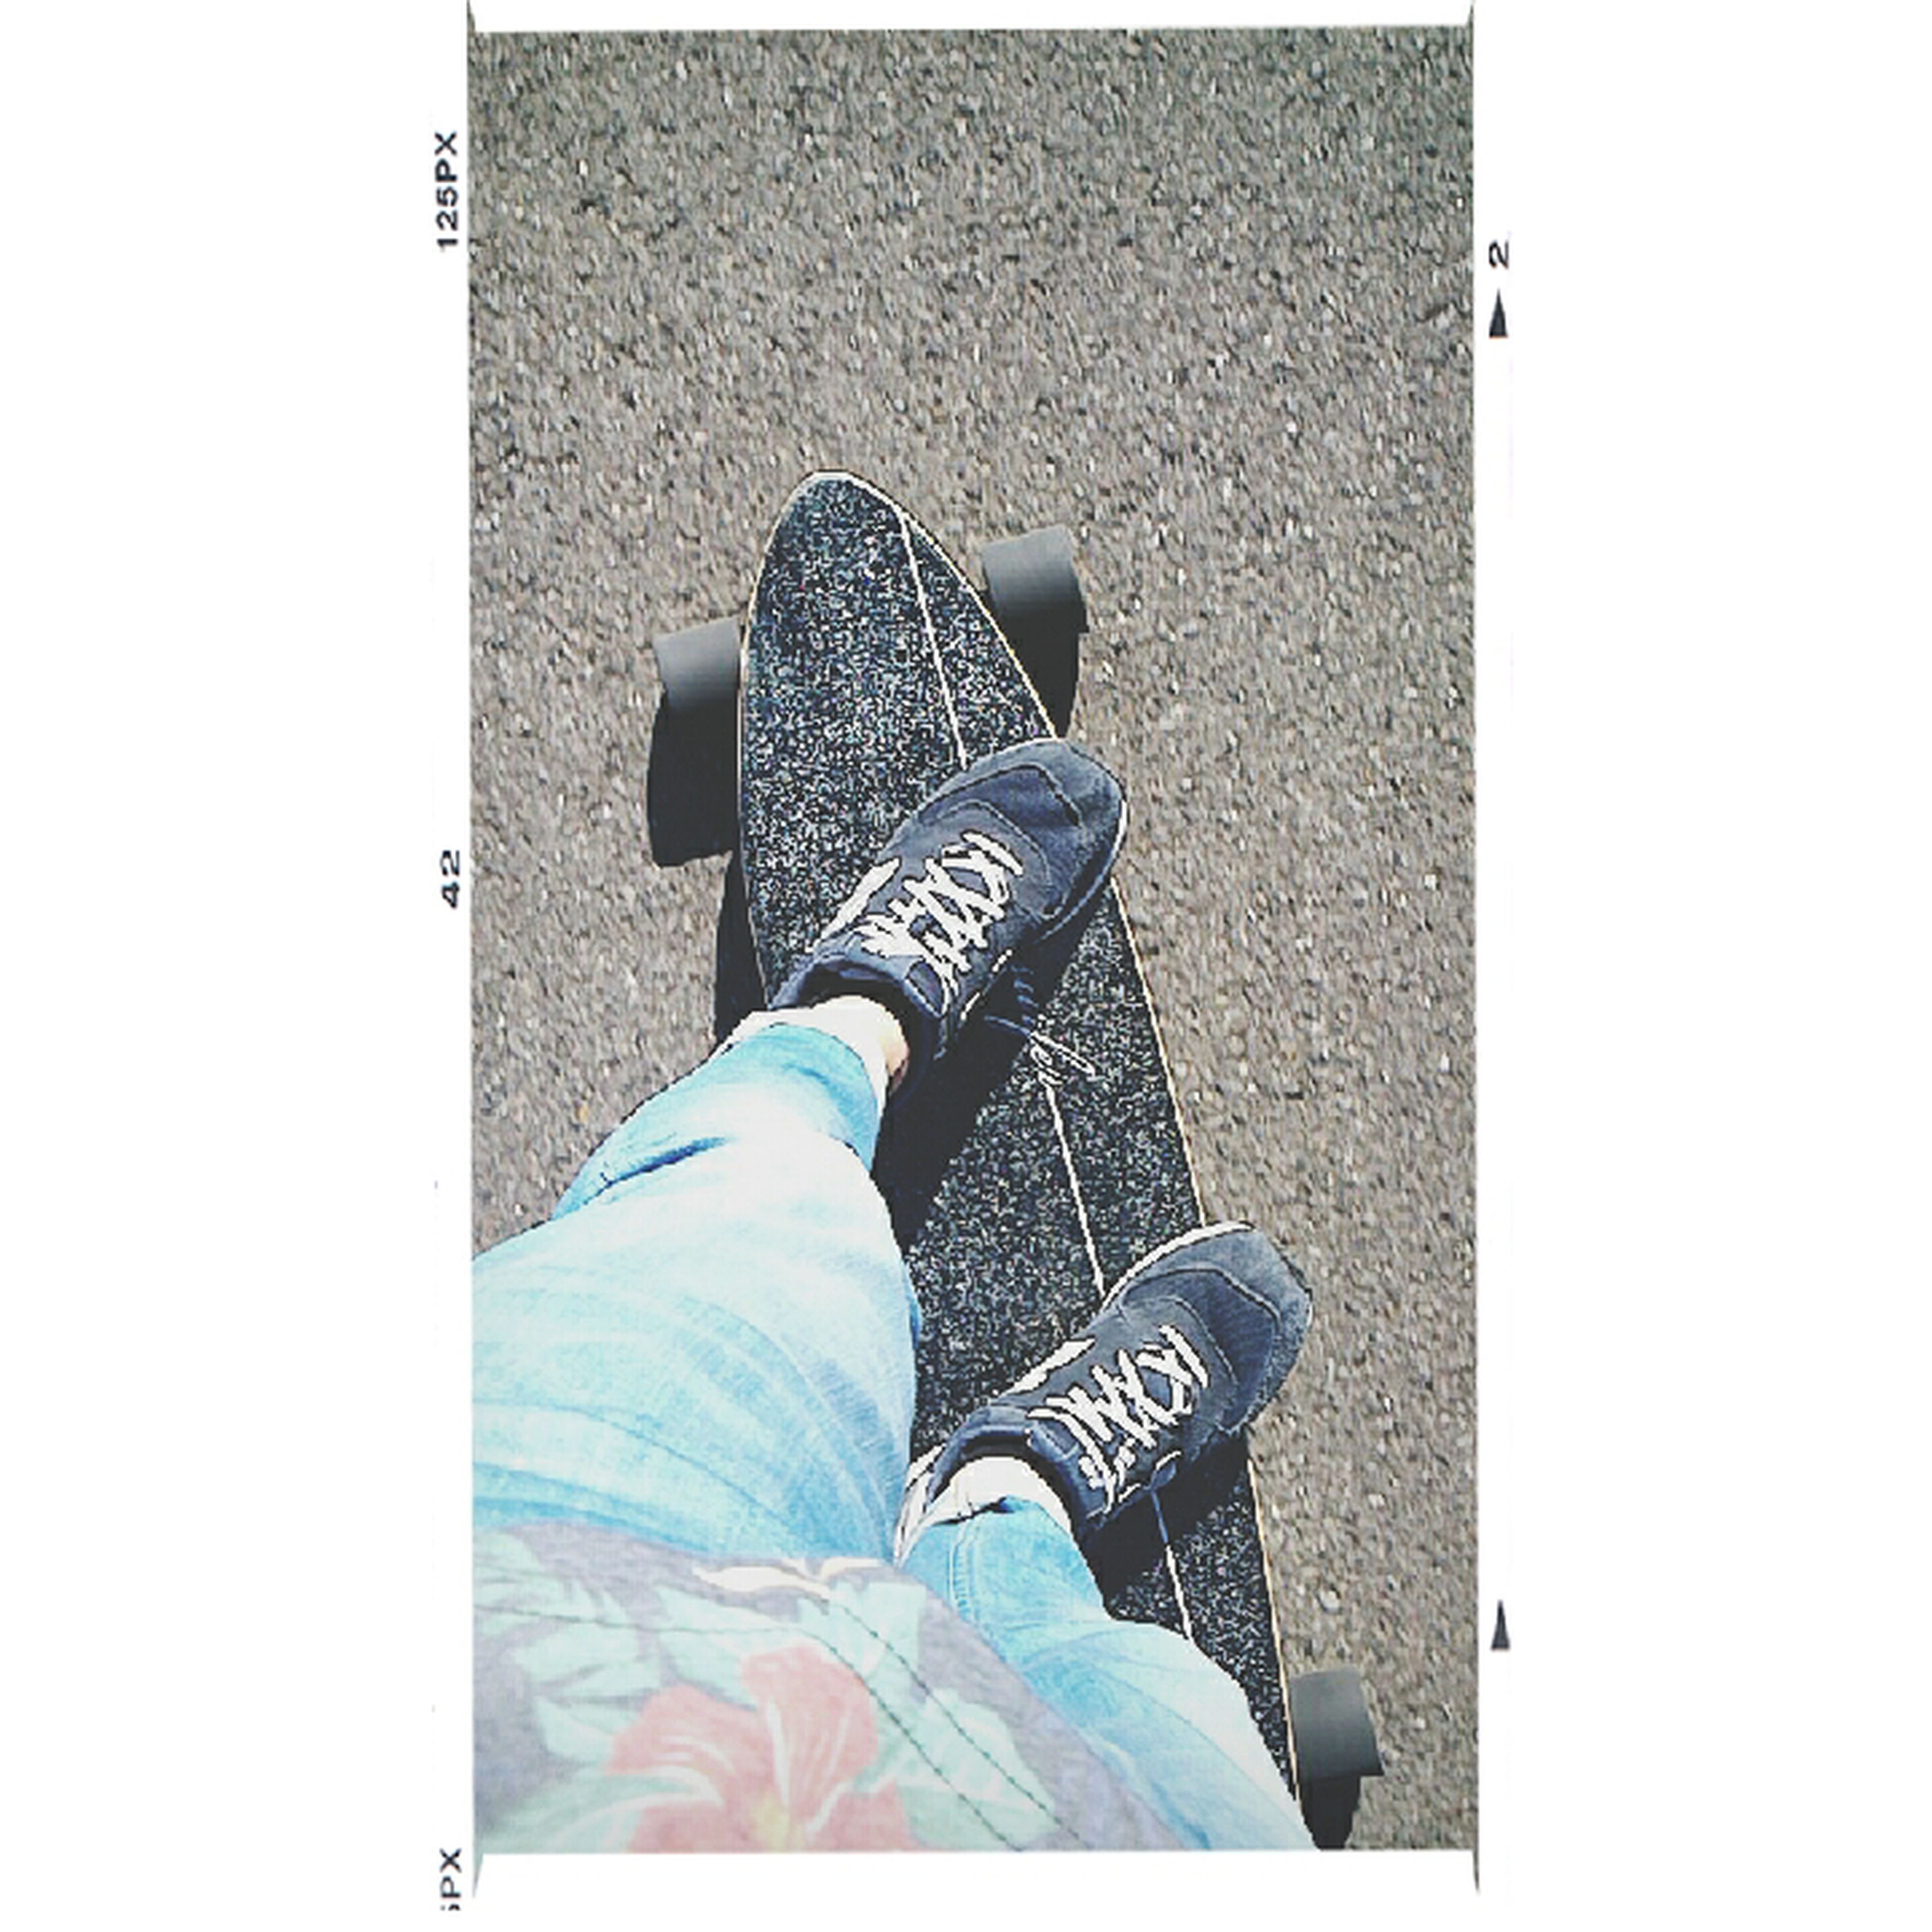 low section, shoe, person, lifestyles, personal perspective, standing, footwear, jeans, high angle view, transfer print, leisure activity, casual clothing, men, auto post production filter, human foot, sitting, relaxation